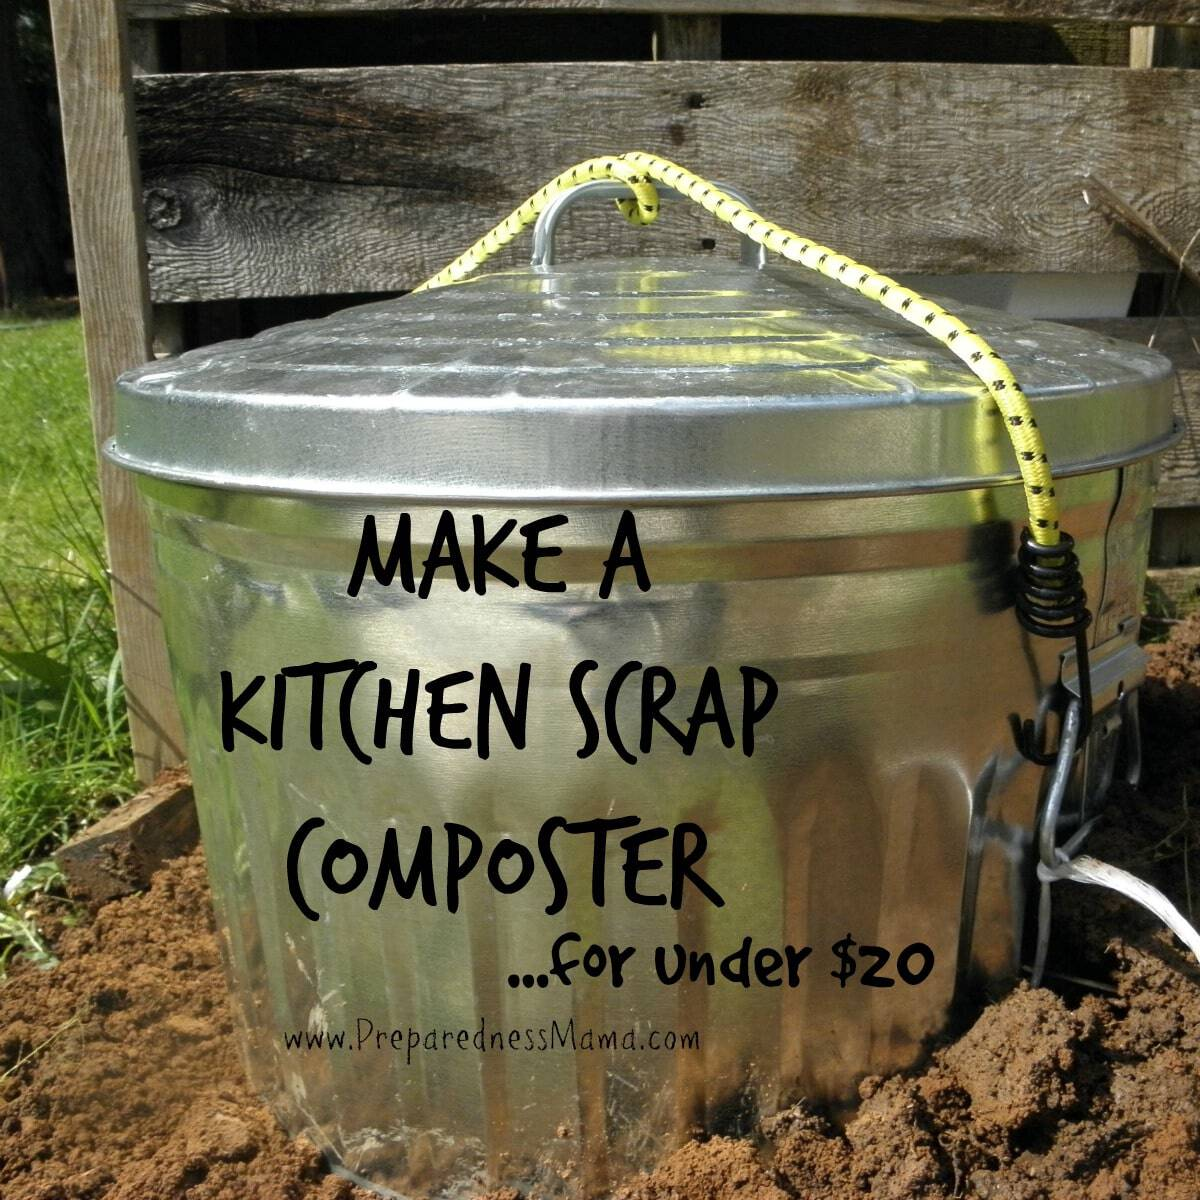 Etonnant Make A Kitchen Scrap Composter For Under $20 | PreparednessMama